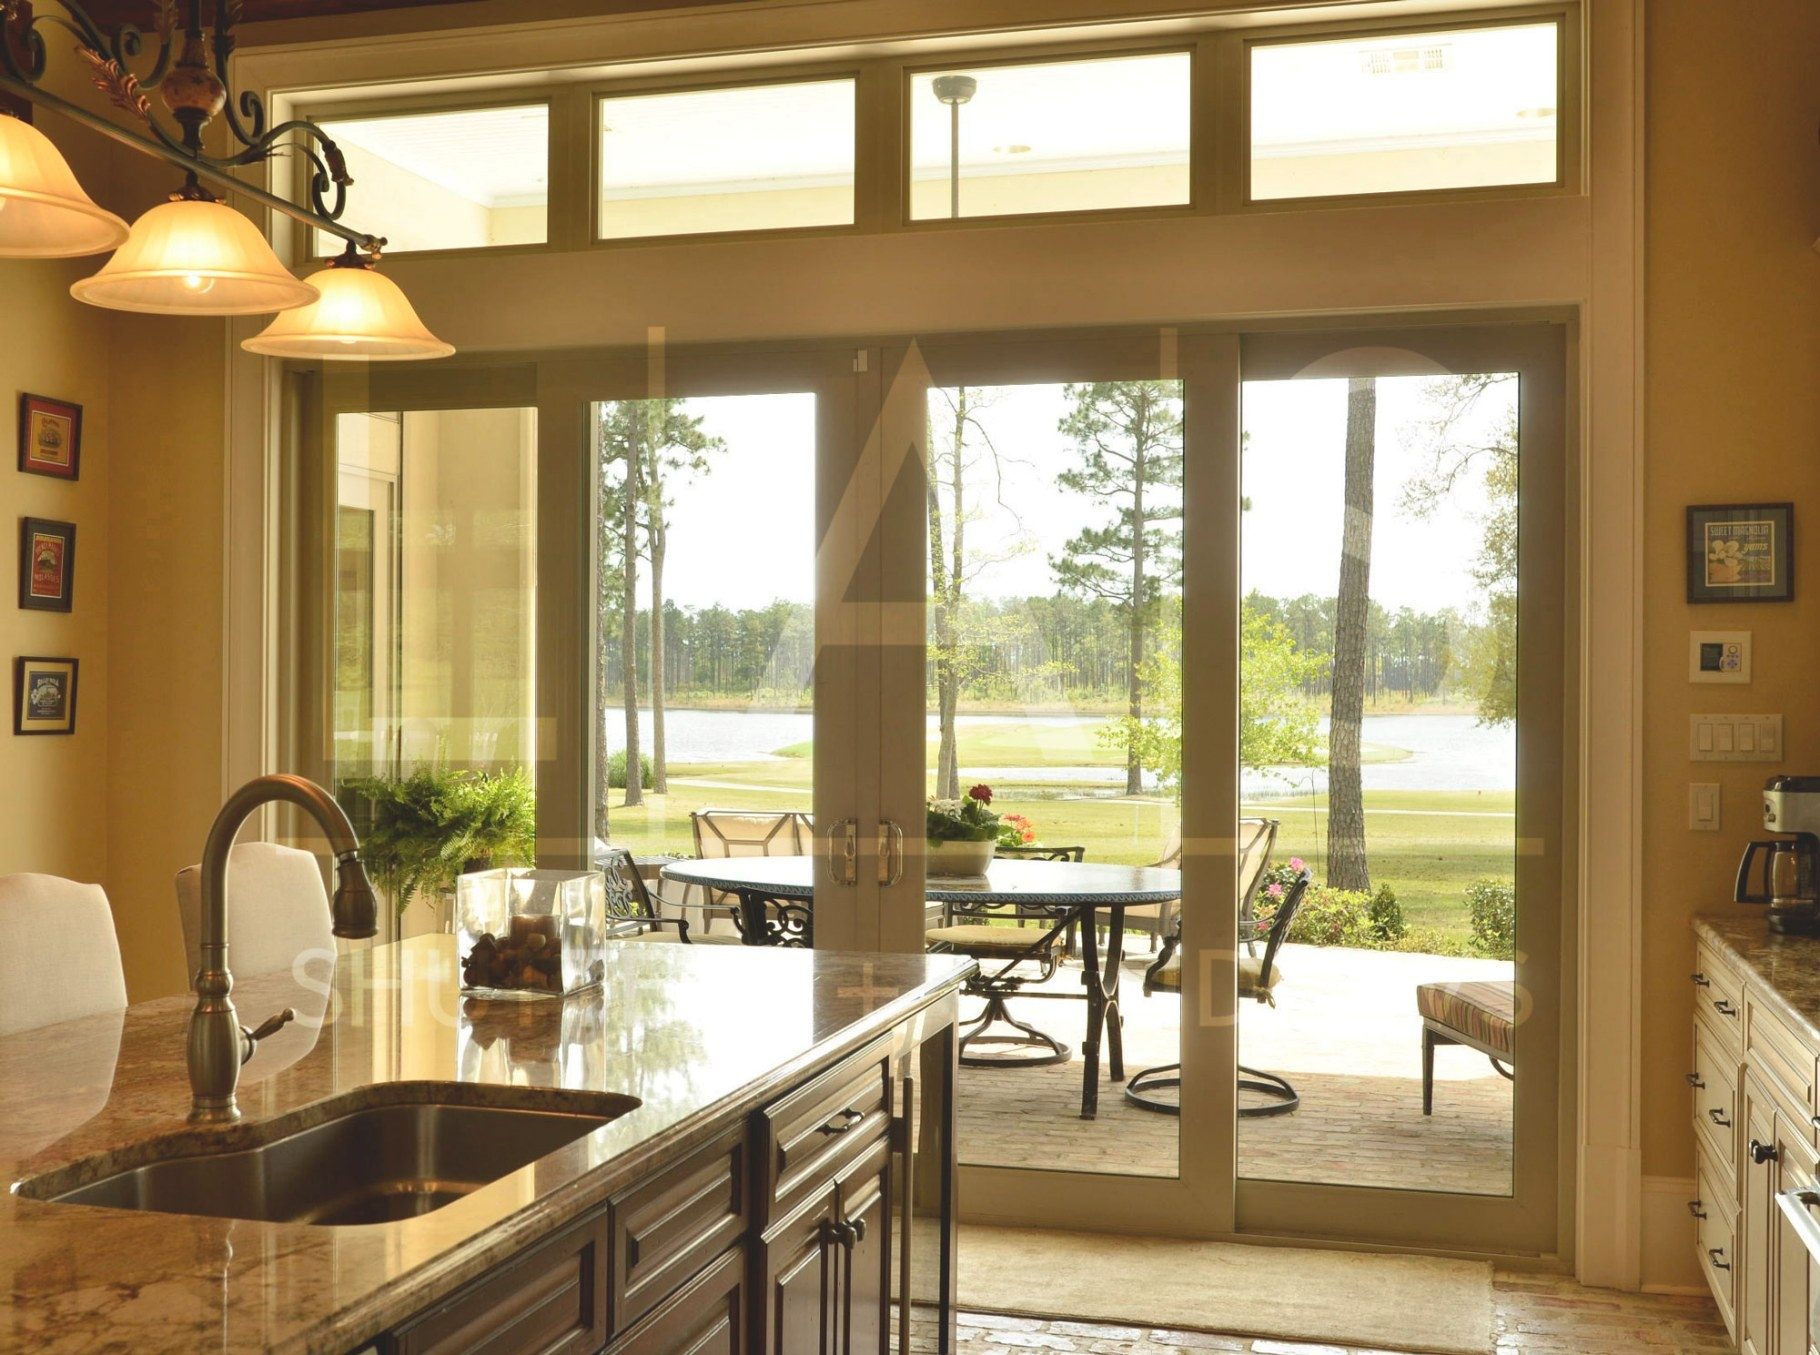 Sliding Glass Doors' Shine And How To Keep Them Sparkling with regard to Best Sliding Glass Doors